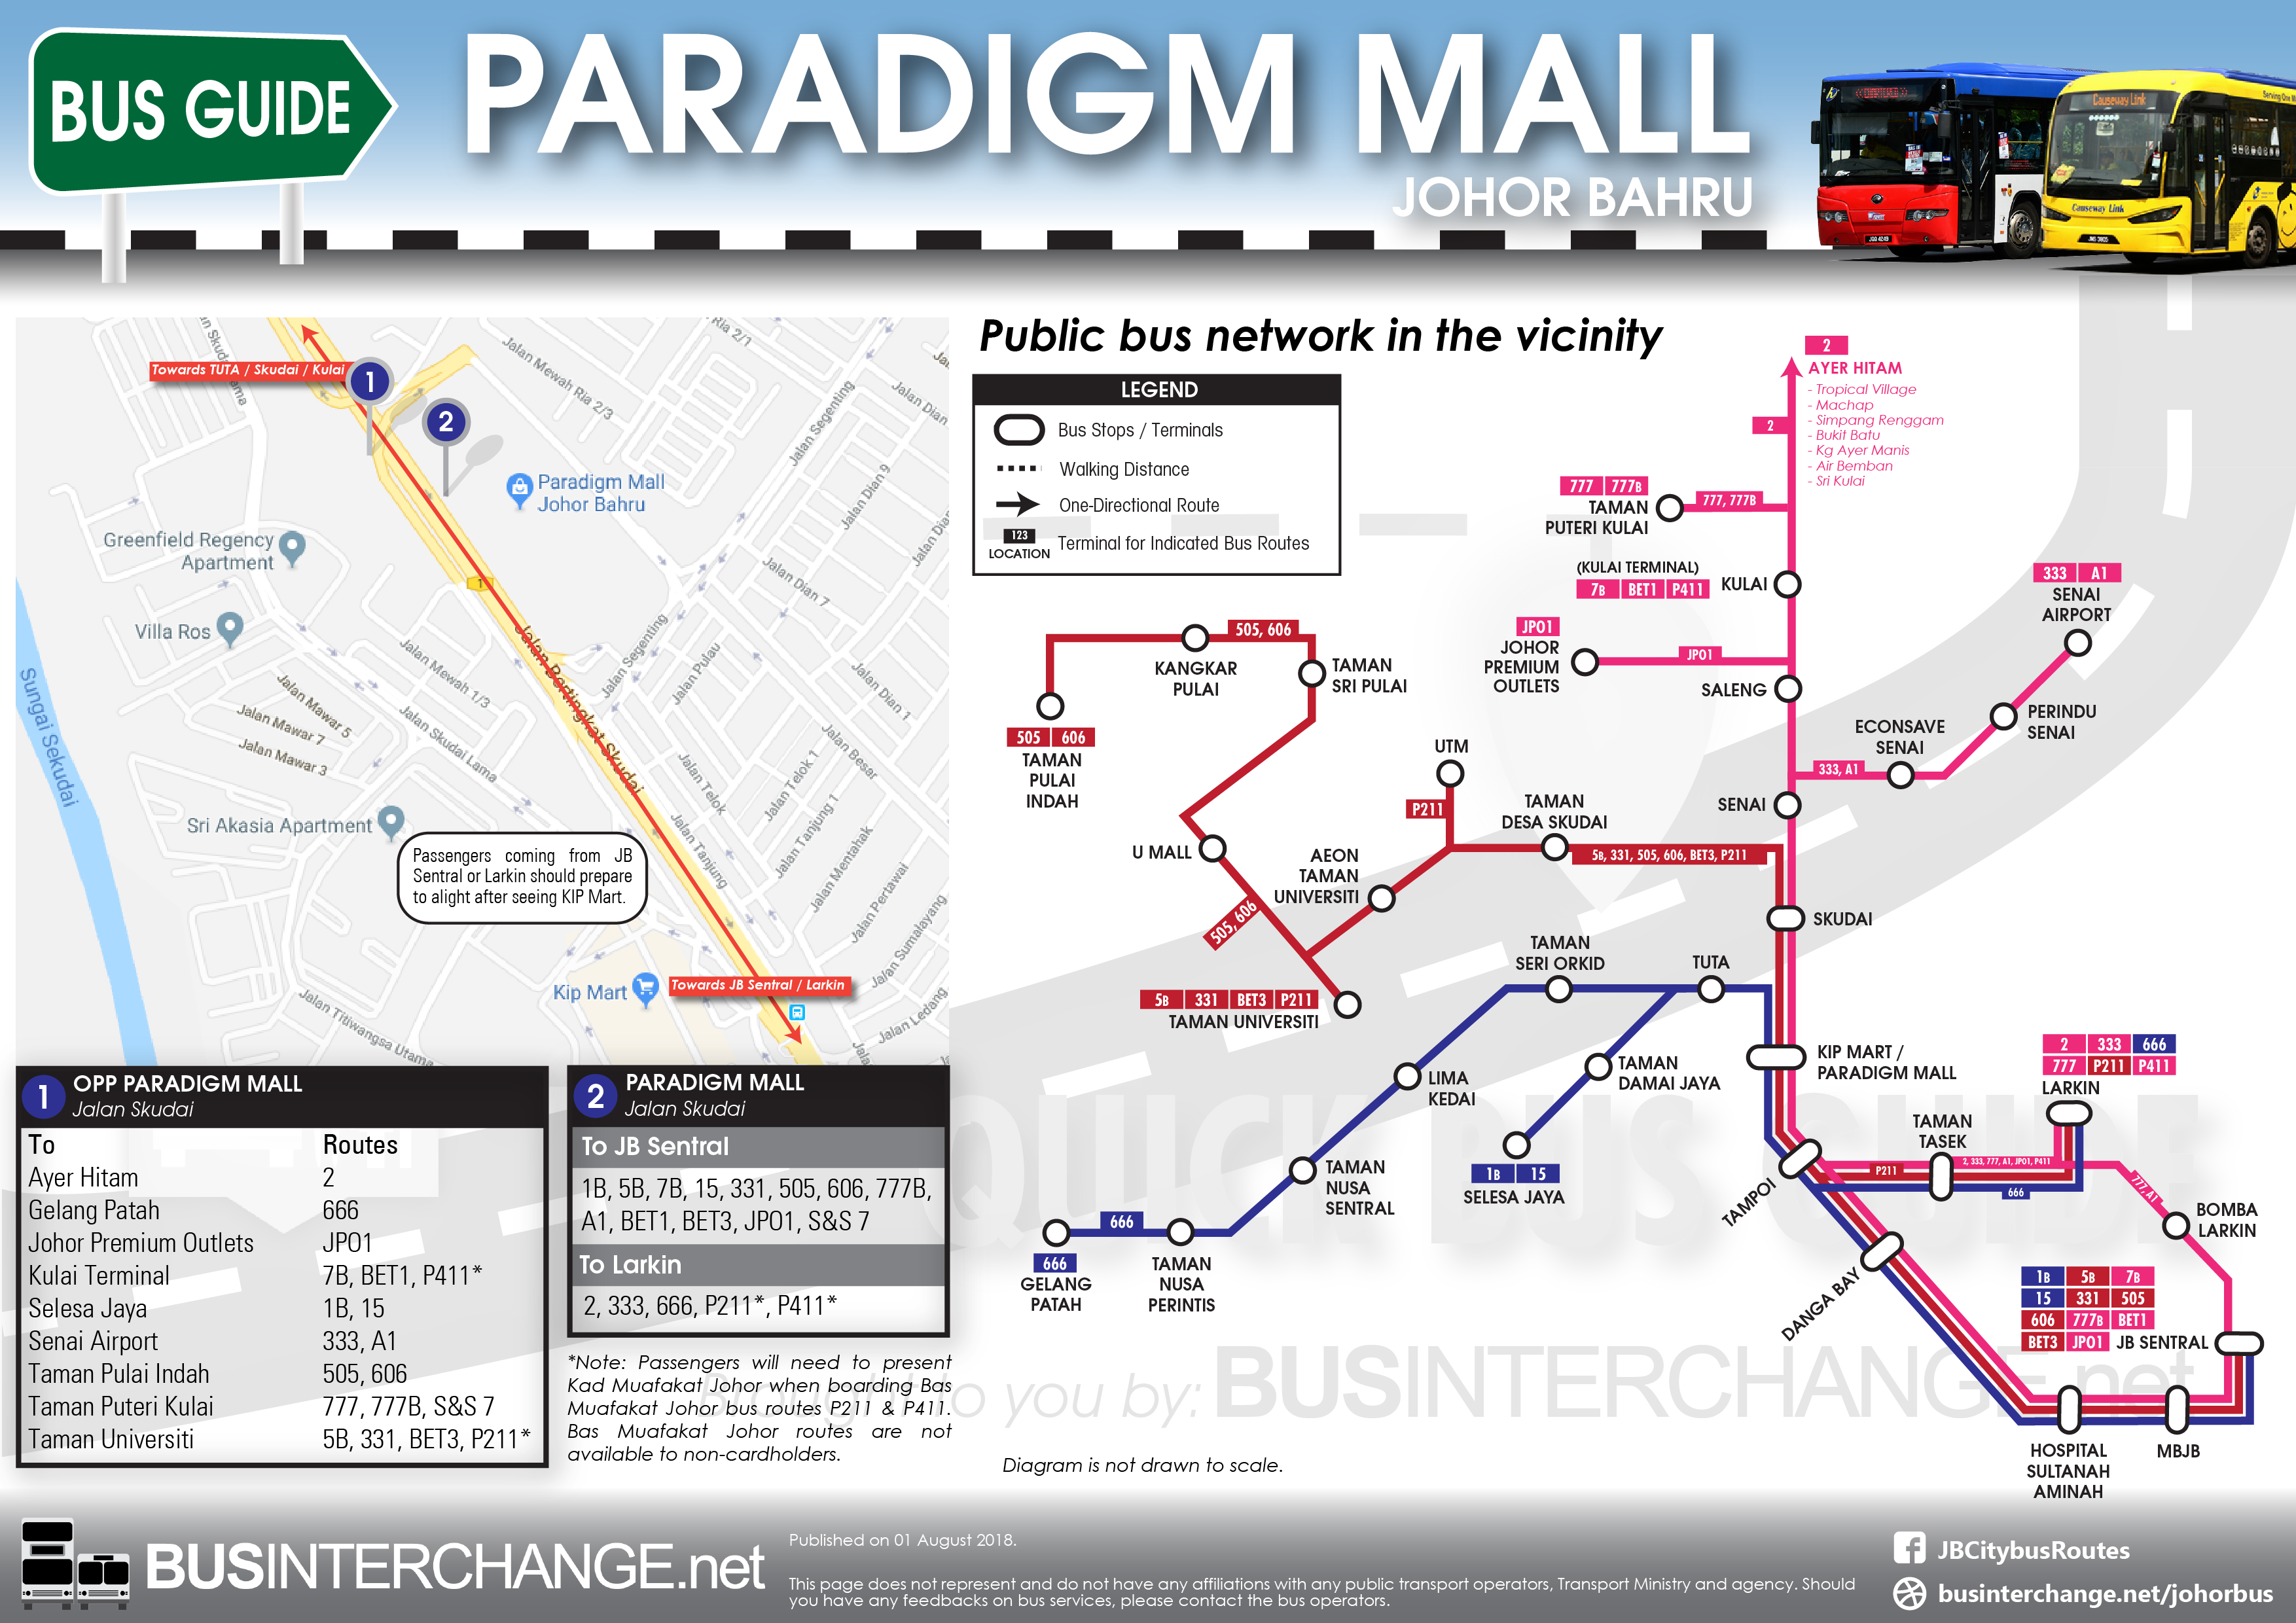 Bus Services To Paradigm Mall Johor Bahru - Bus Interchange